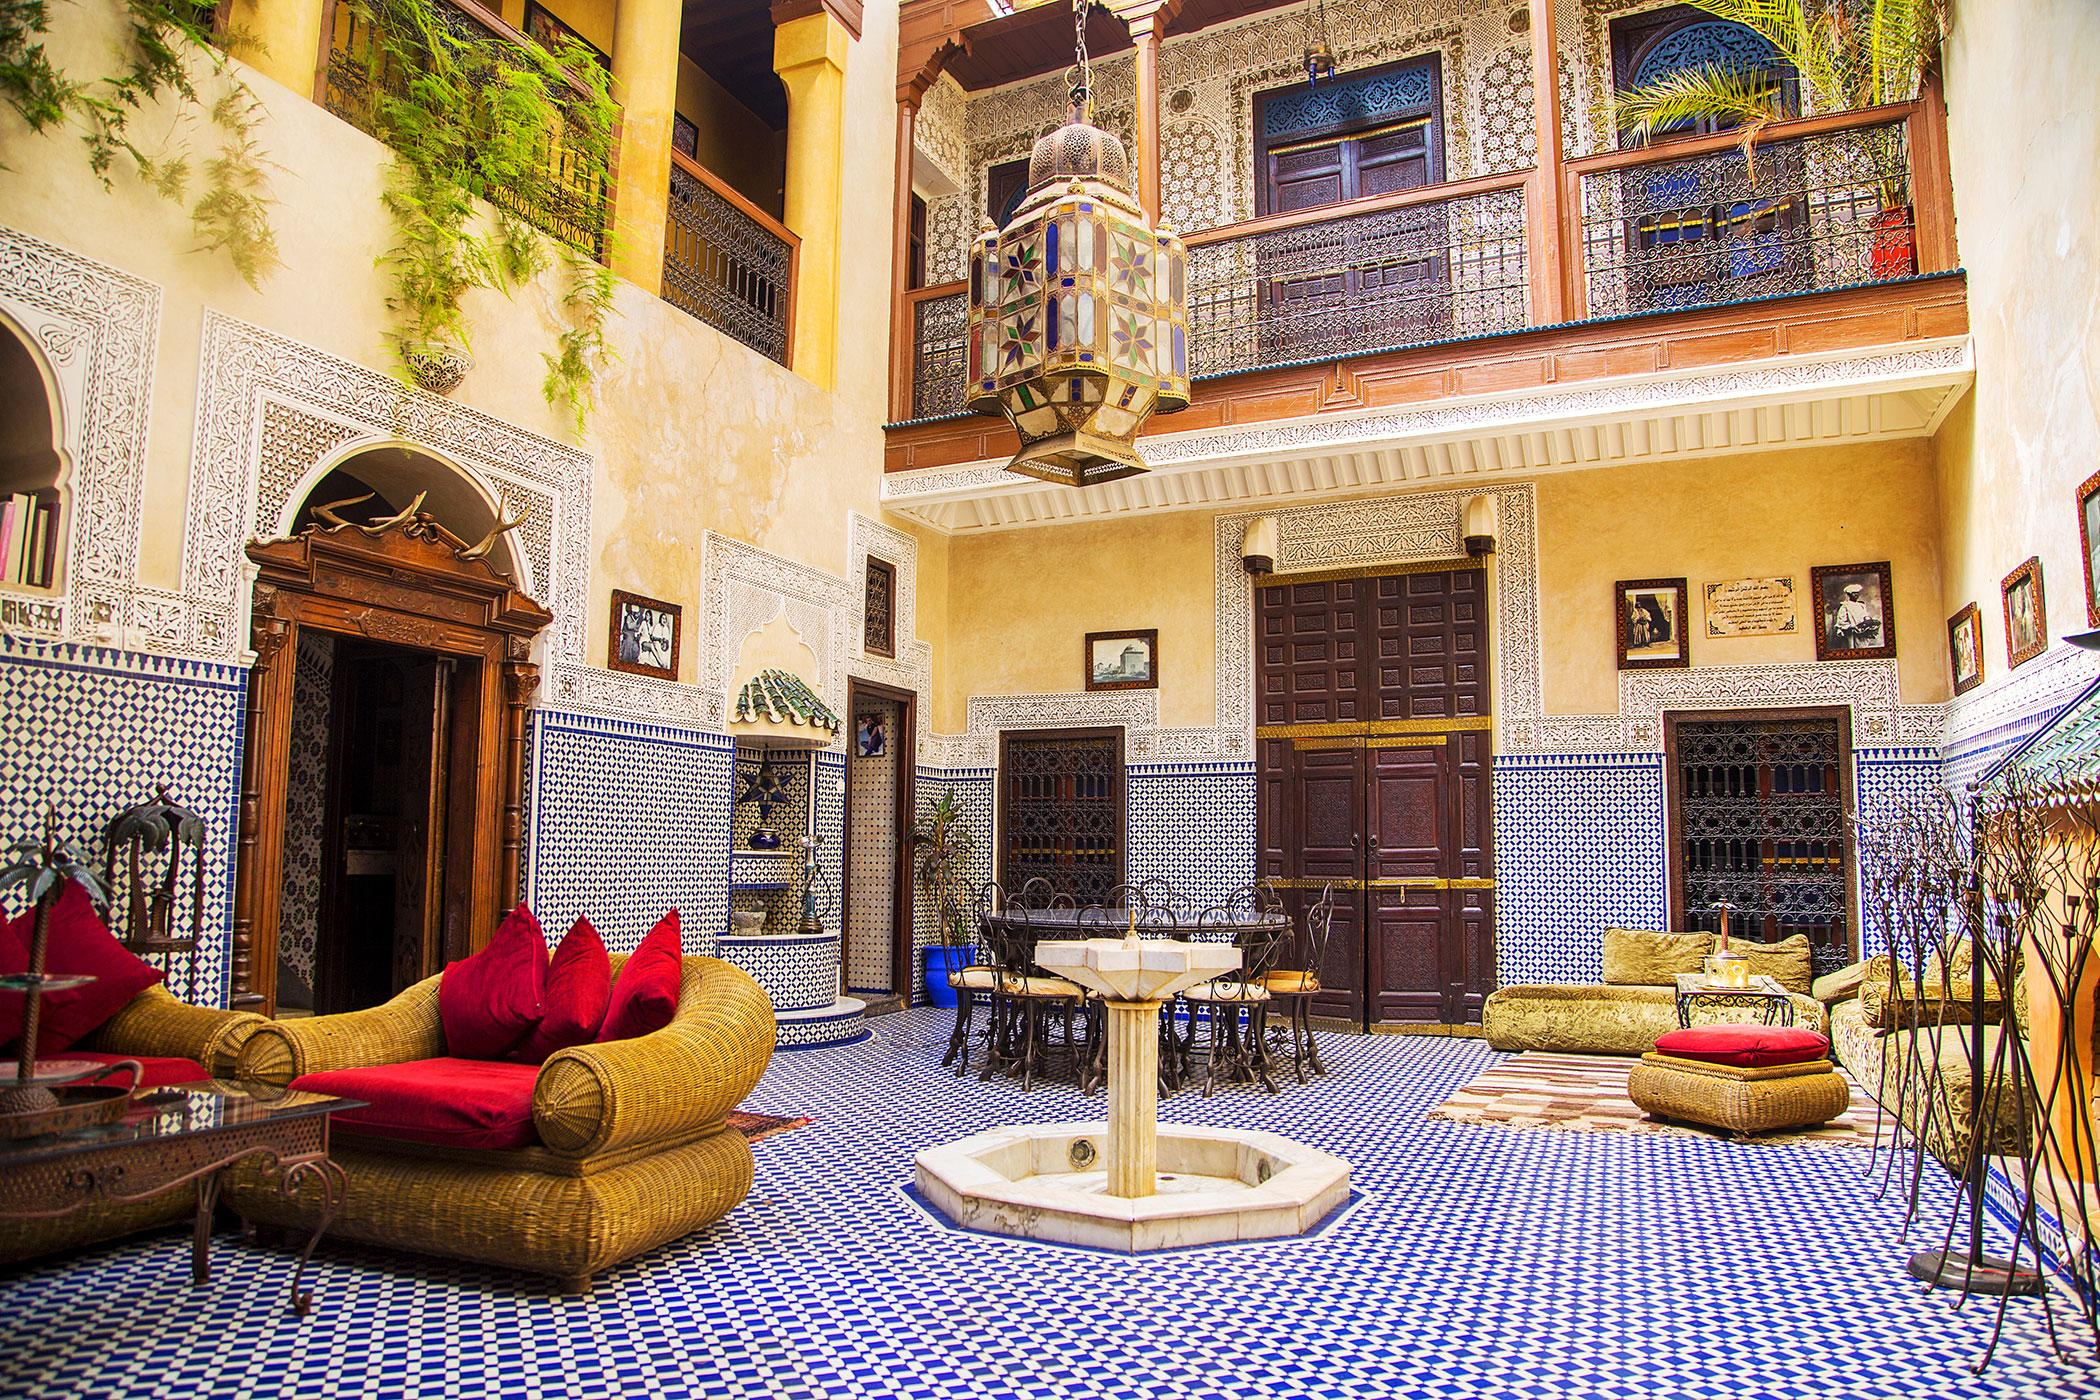 18 Ultimate Things To Do In Morocco Fodors Travel Guide